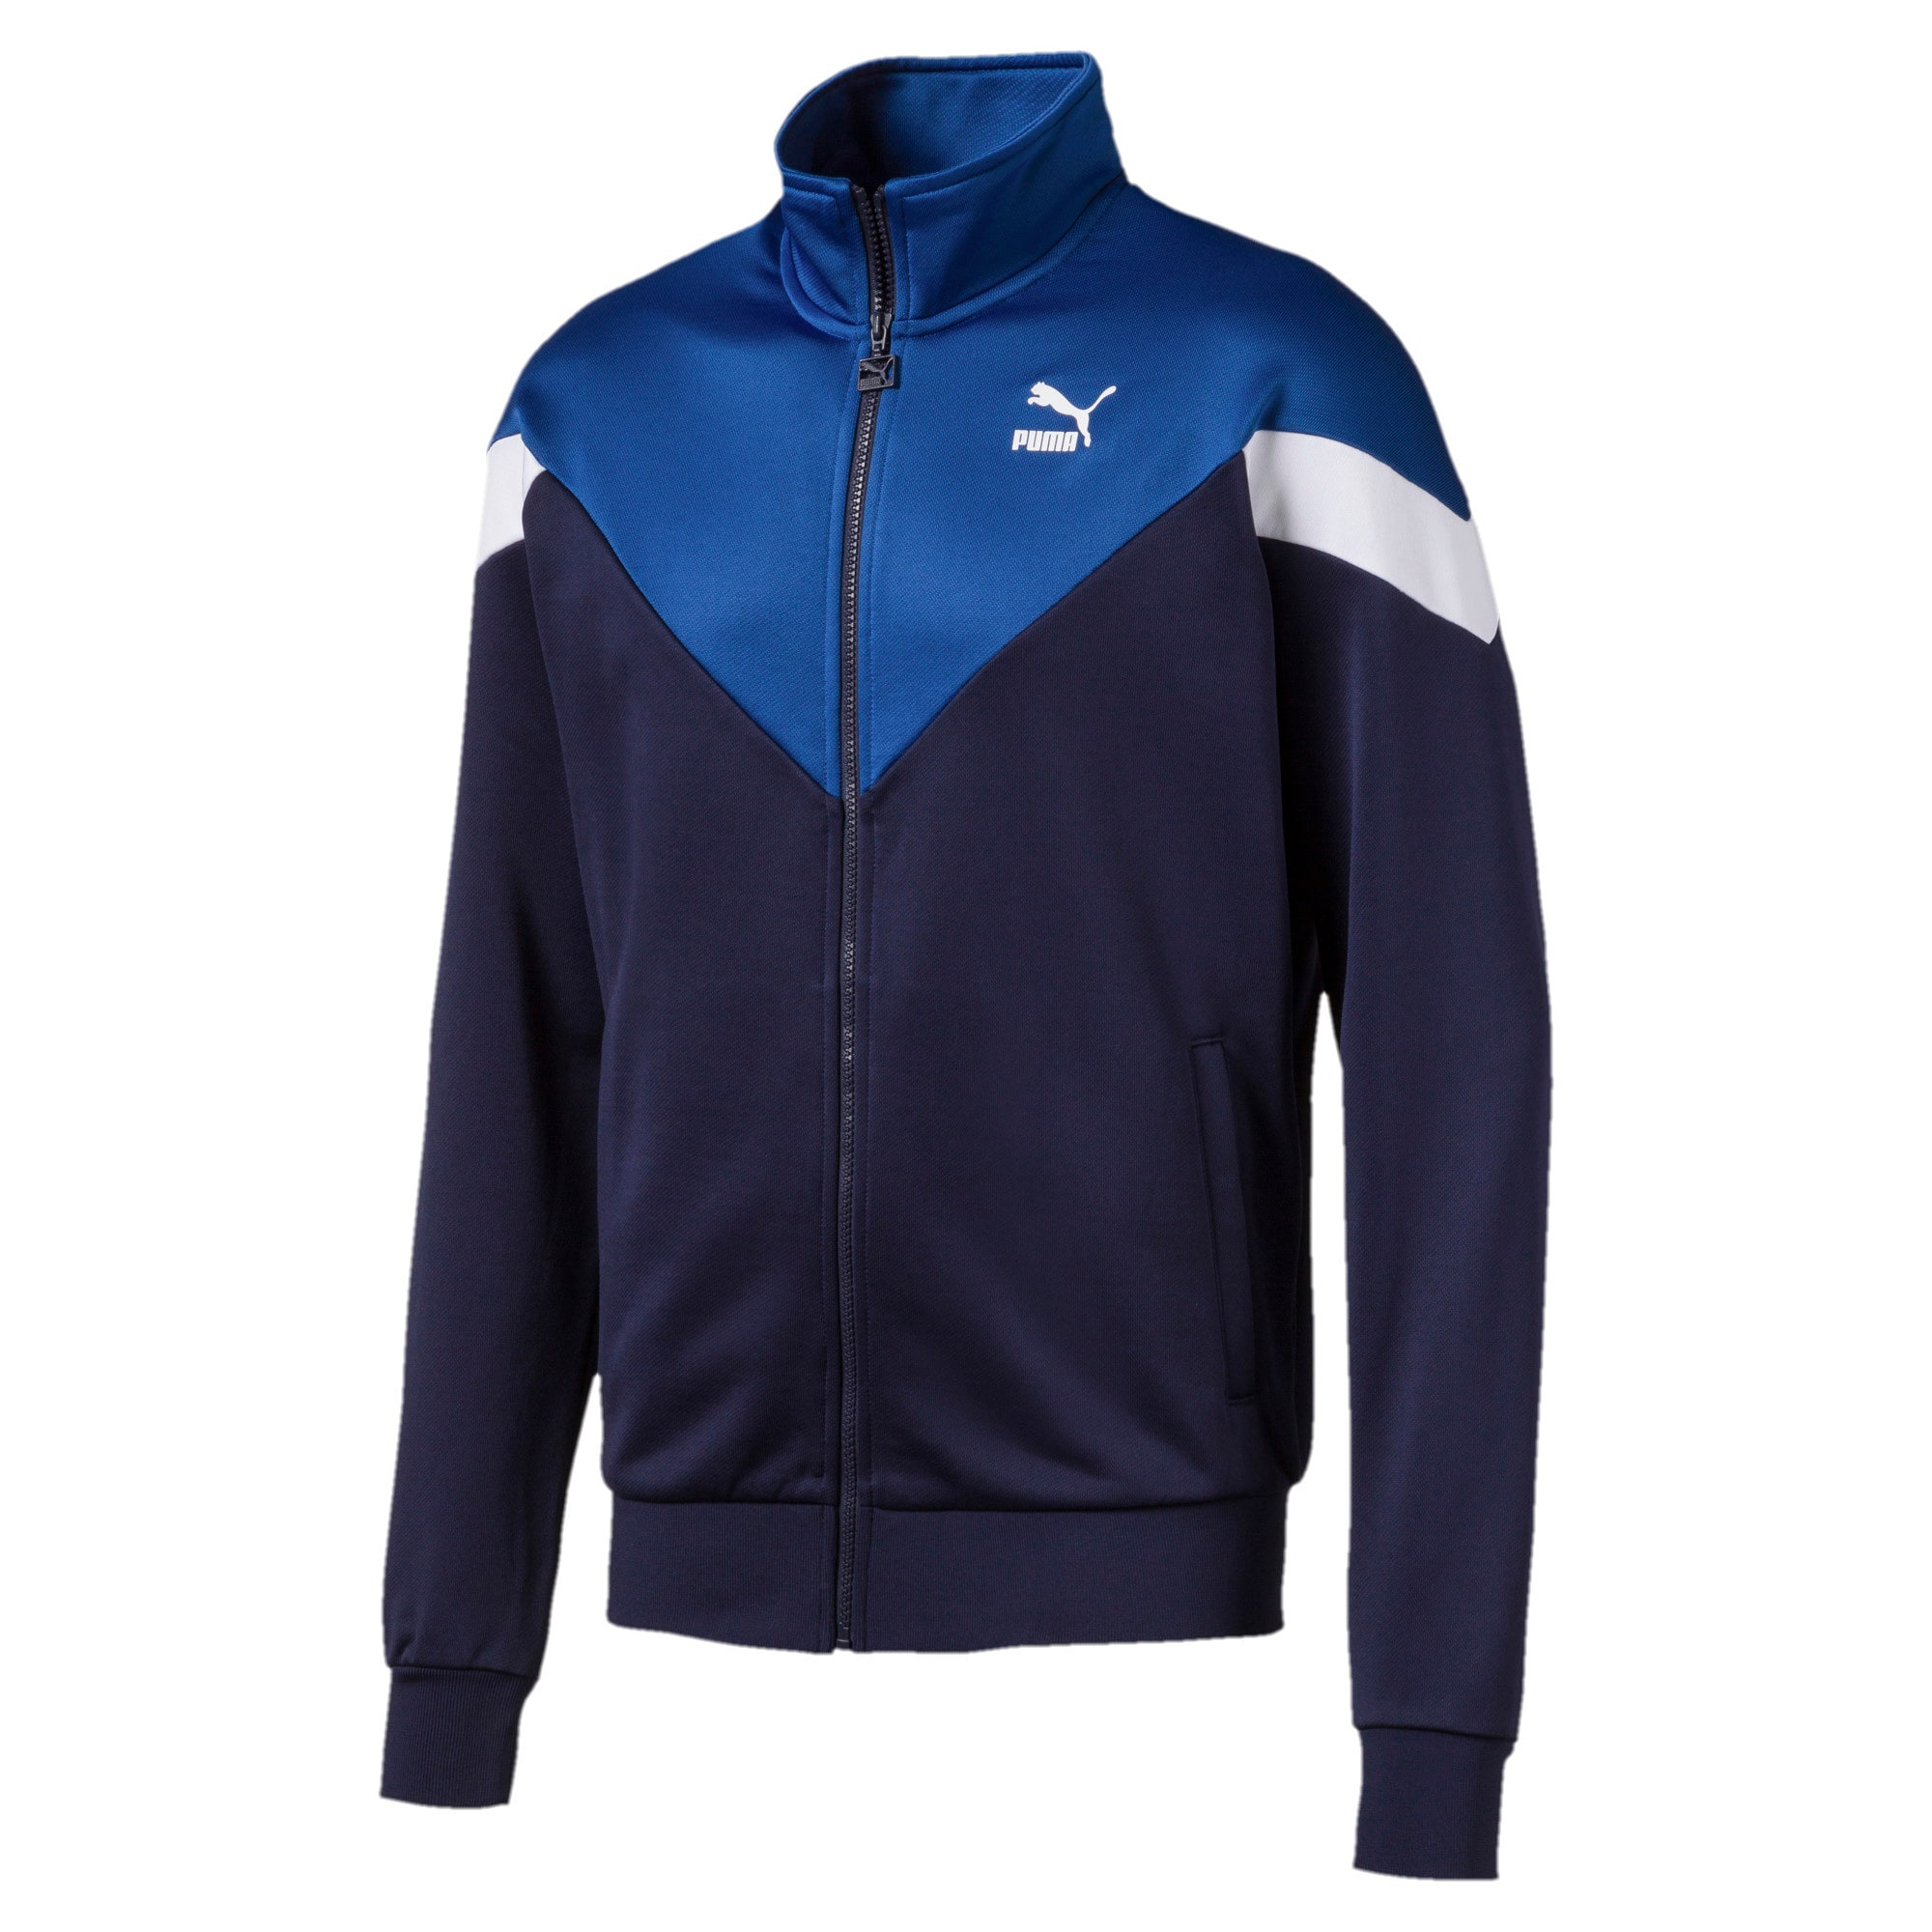 Thumbnail 1 of Iconic MCS Men's Track Jacket, Peacoat, medium